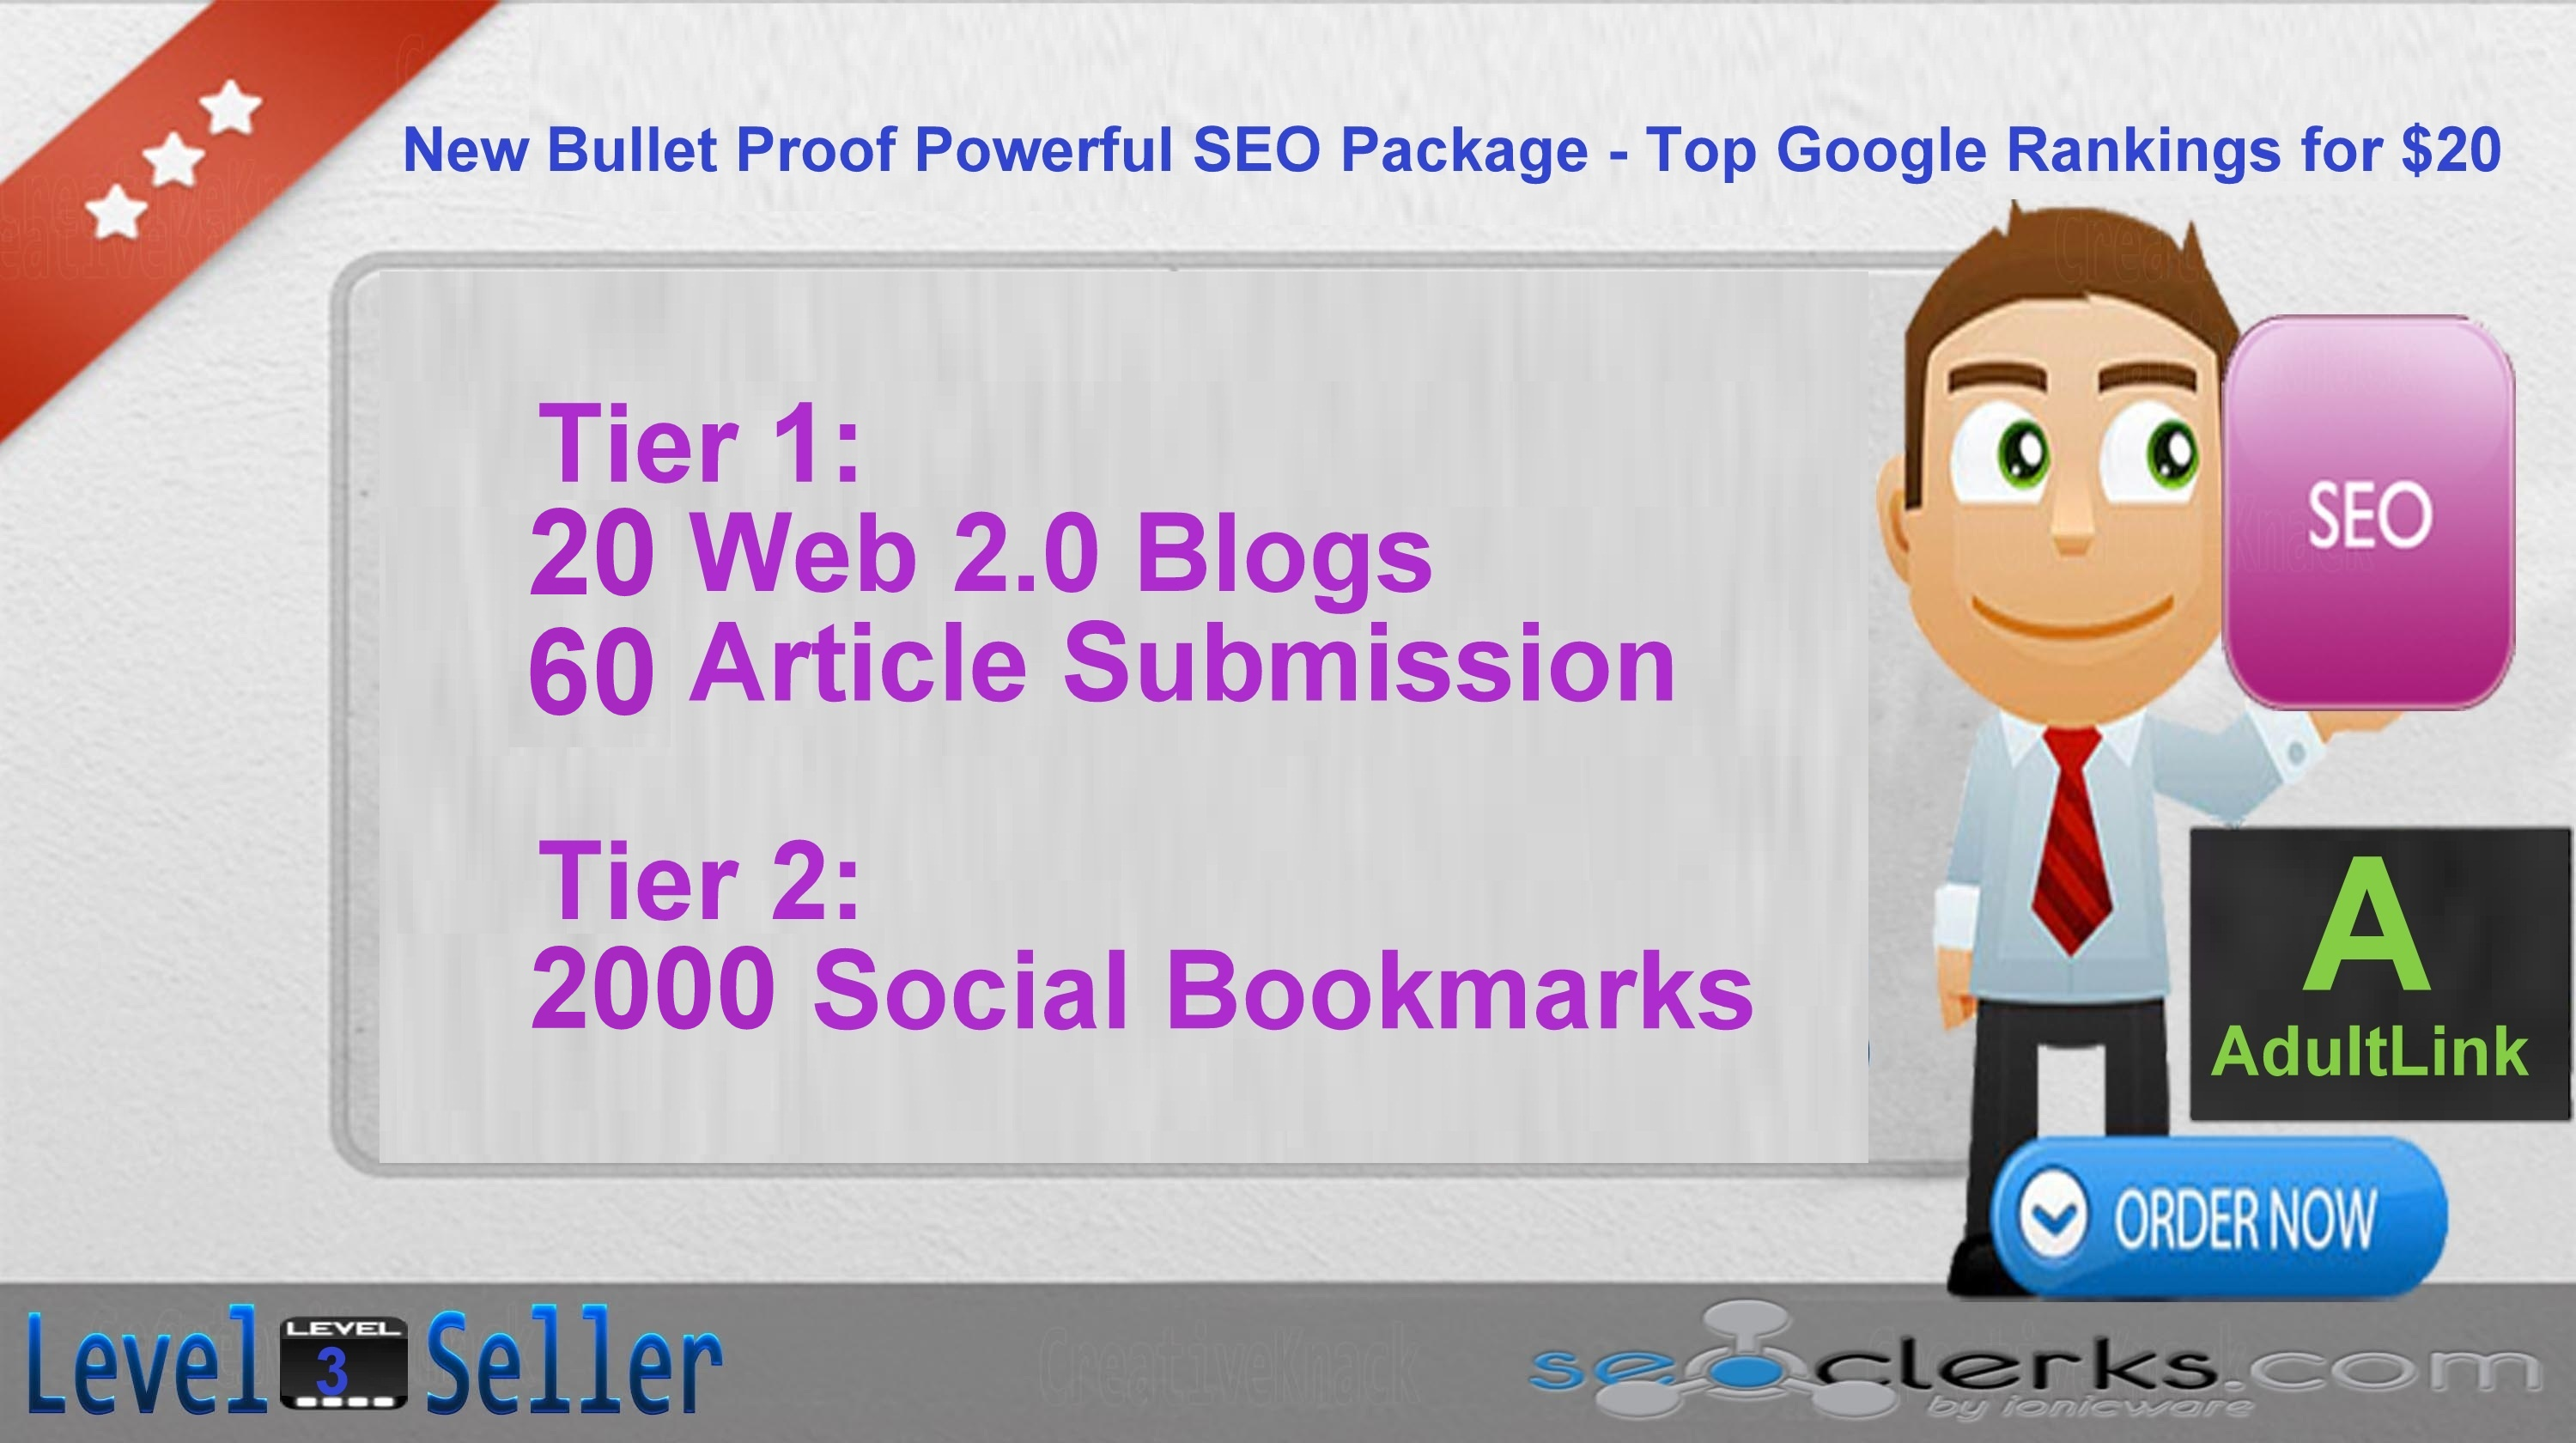 New Bullet Proof Powerful SEO Package - Top Google Rankings